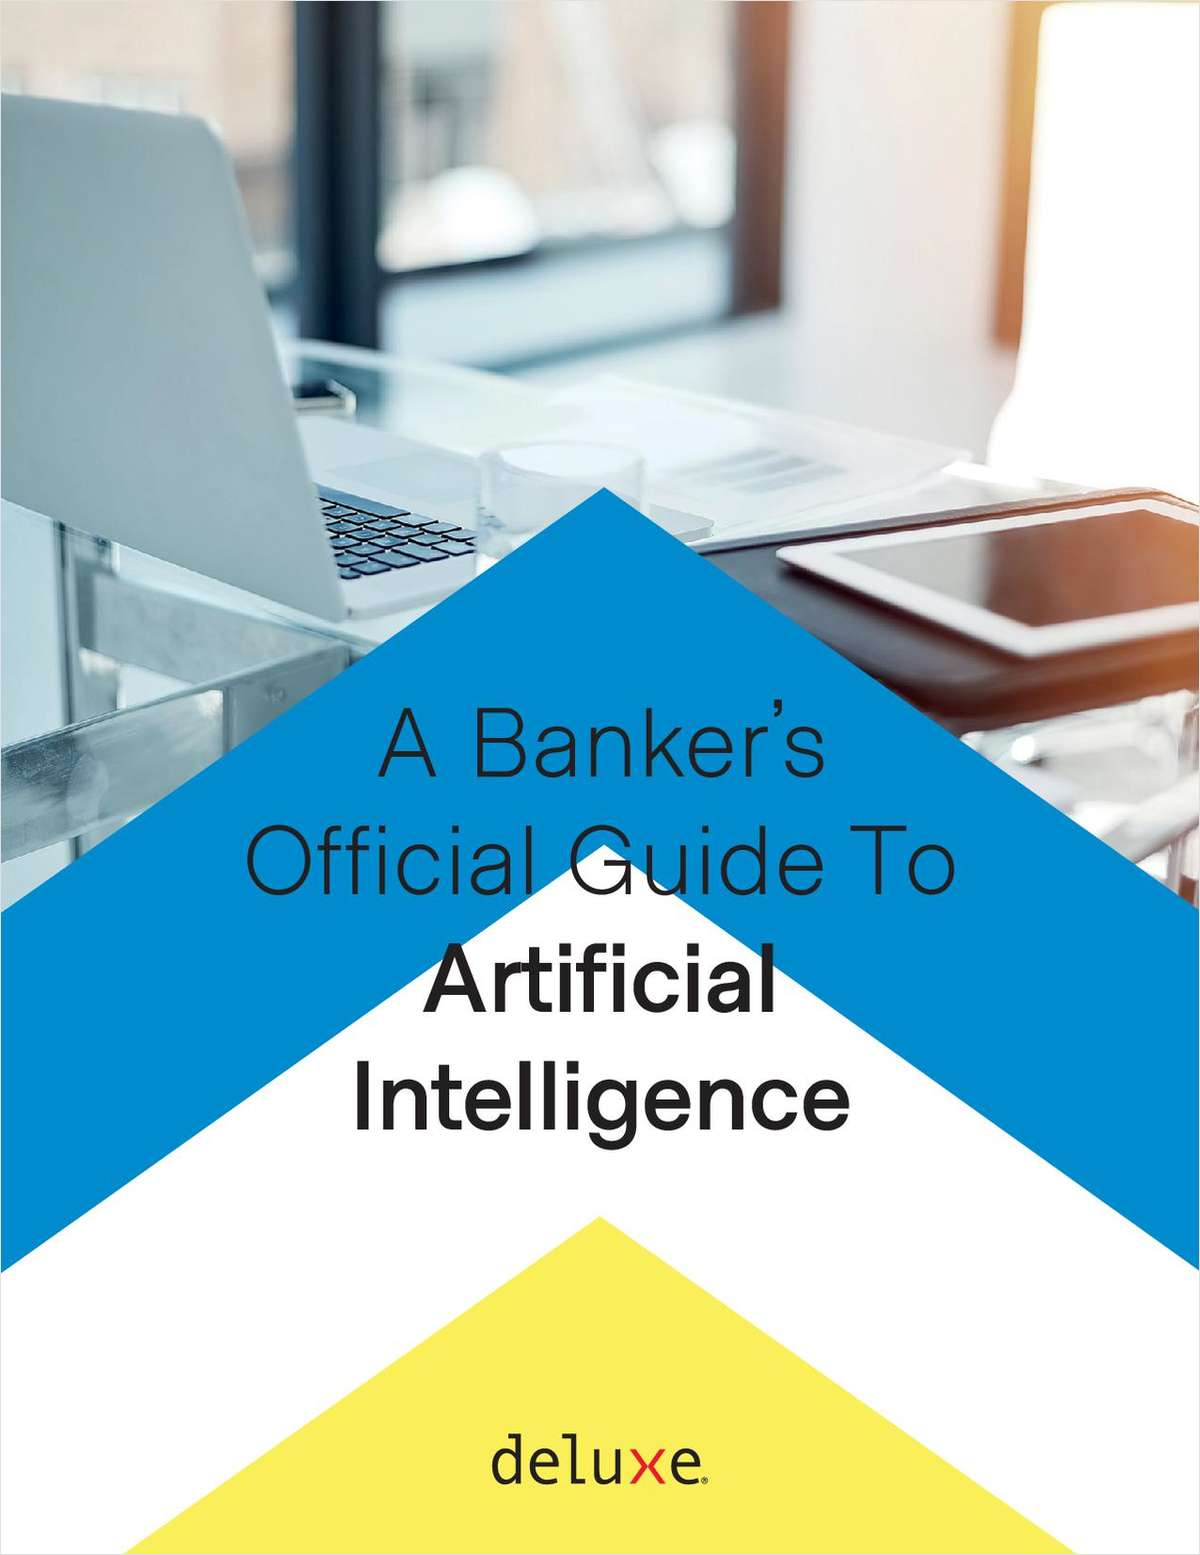 A Banker's Official Guide to Artificial Intelligence